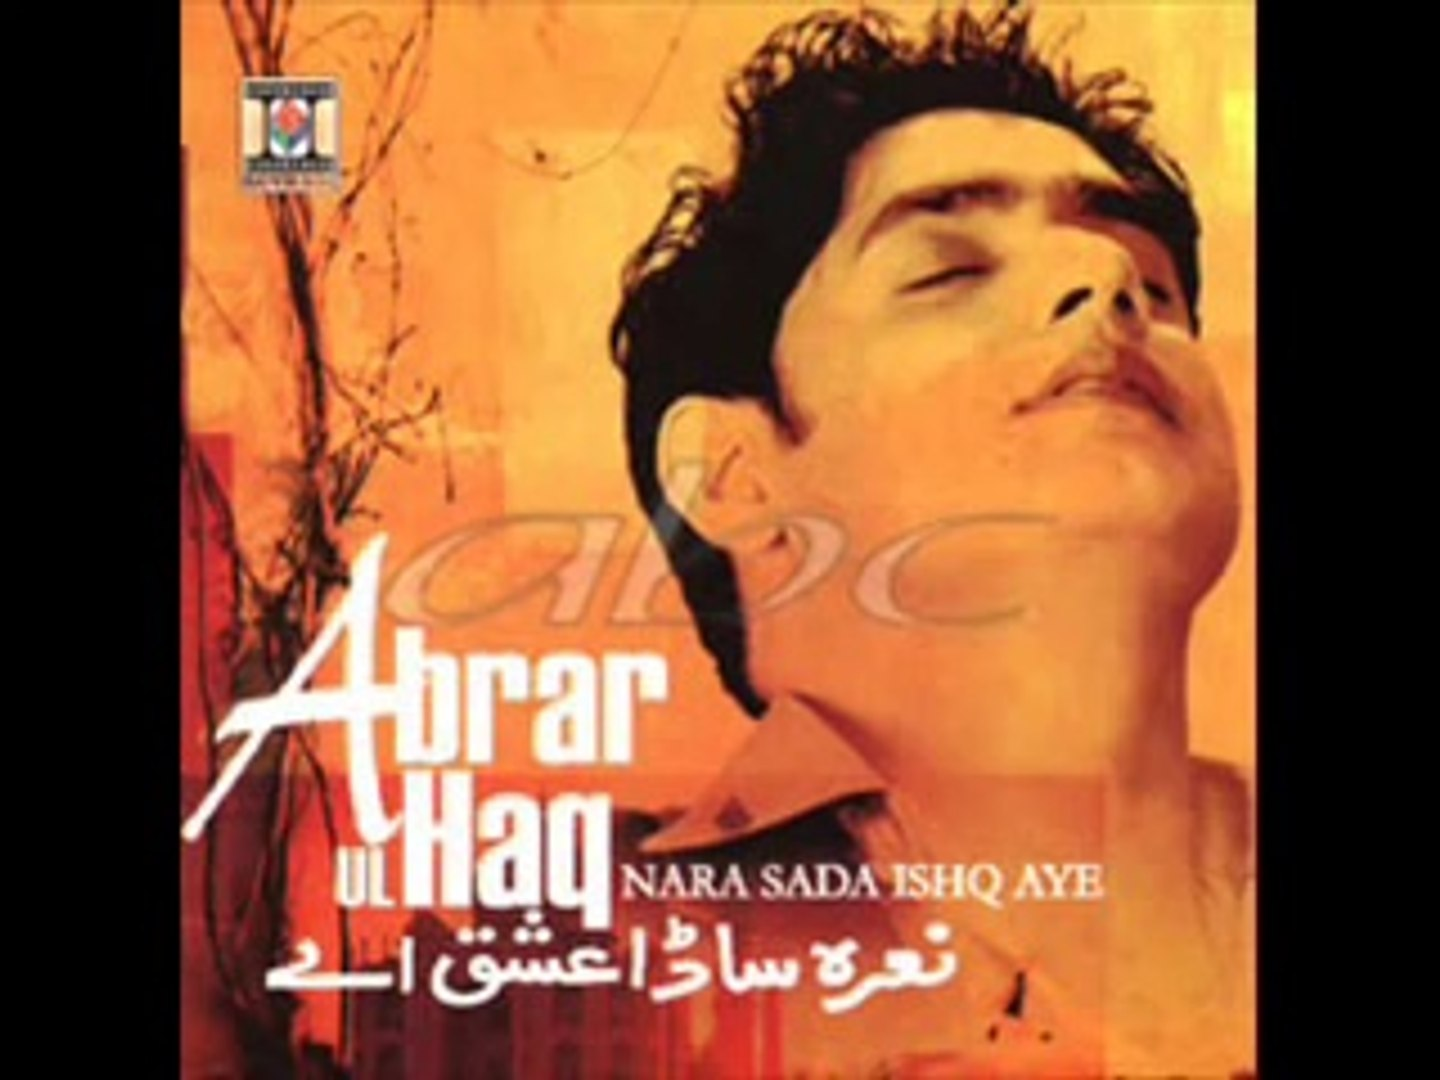 abrar ul haq all songs mp3 free download skull